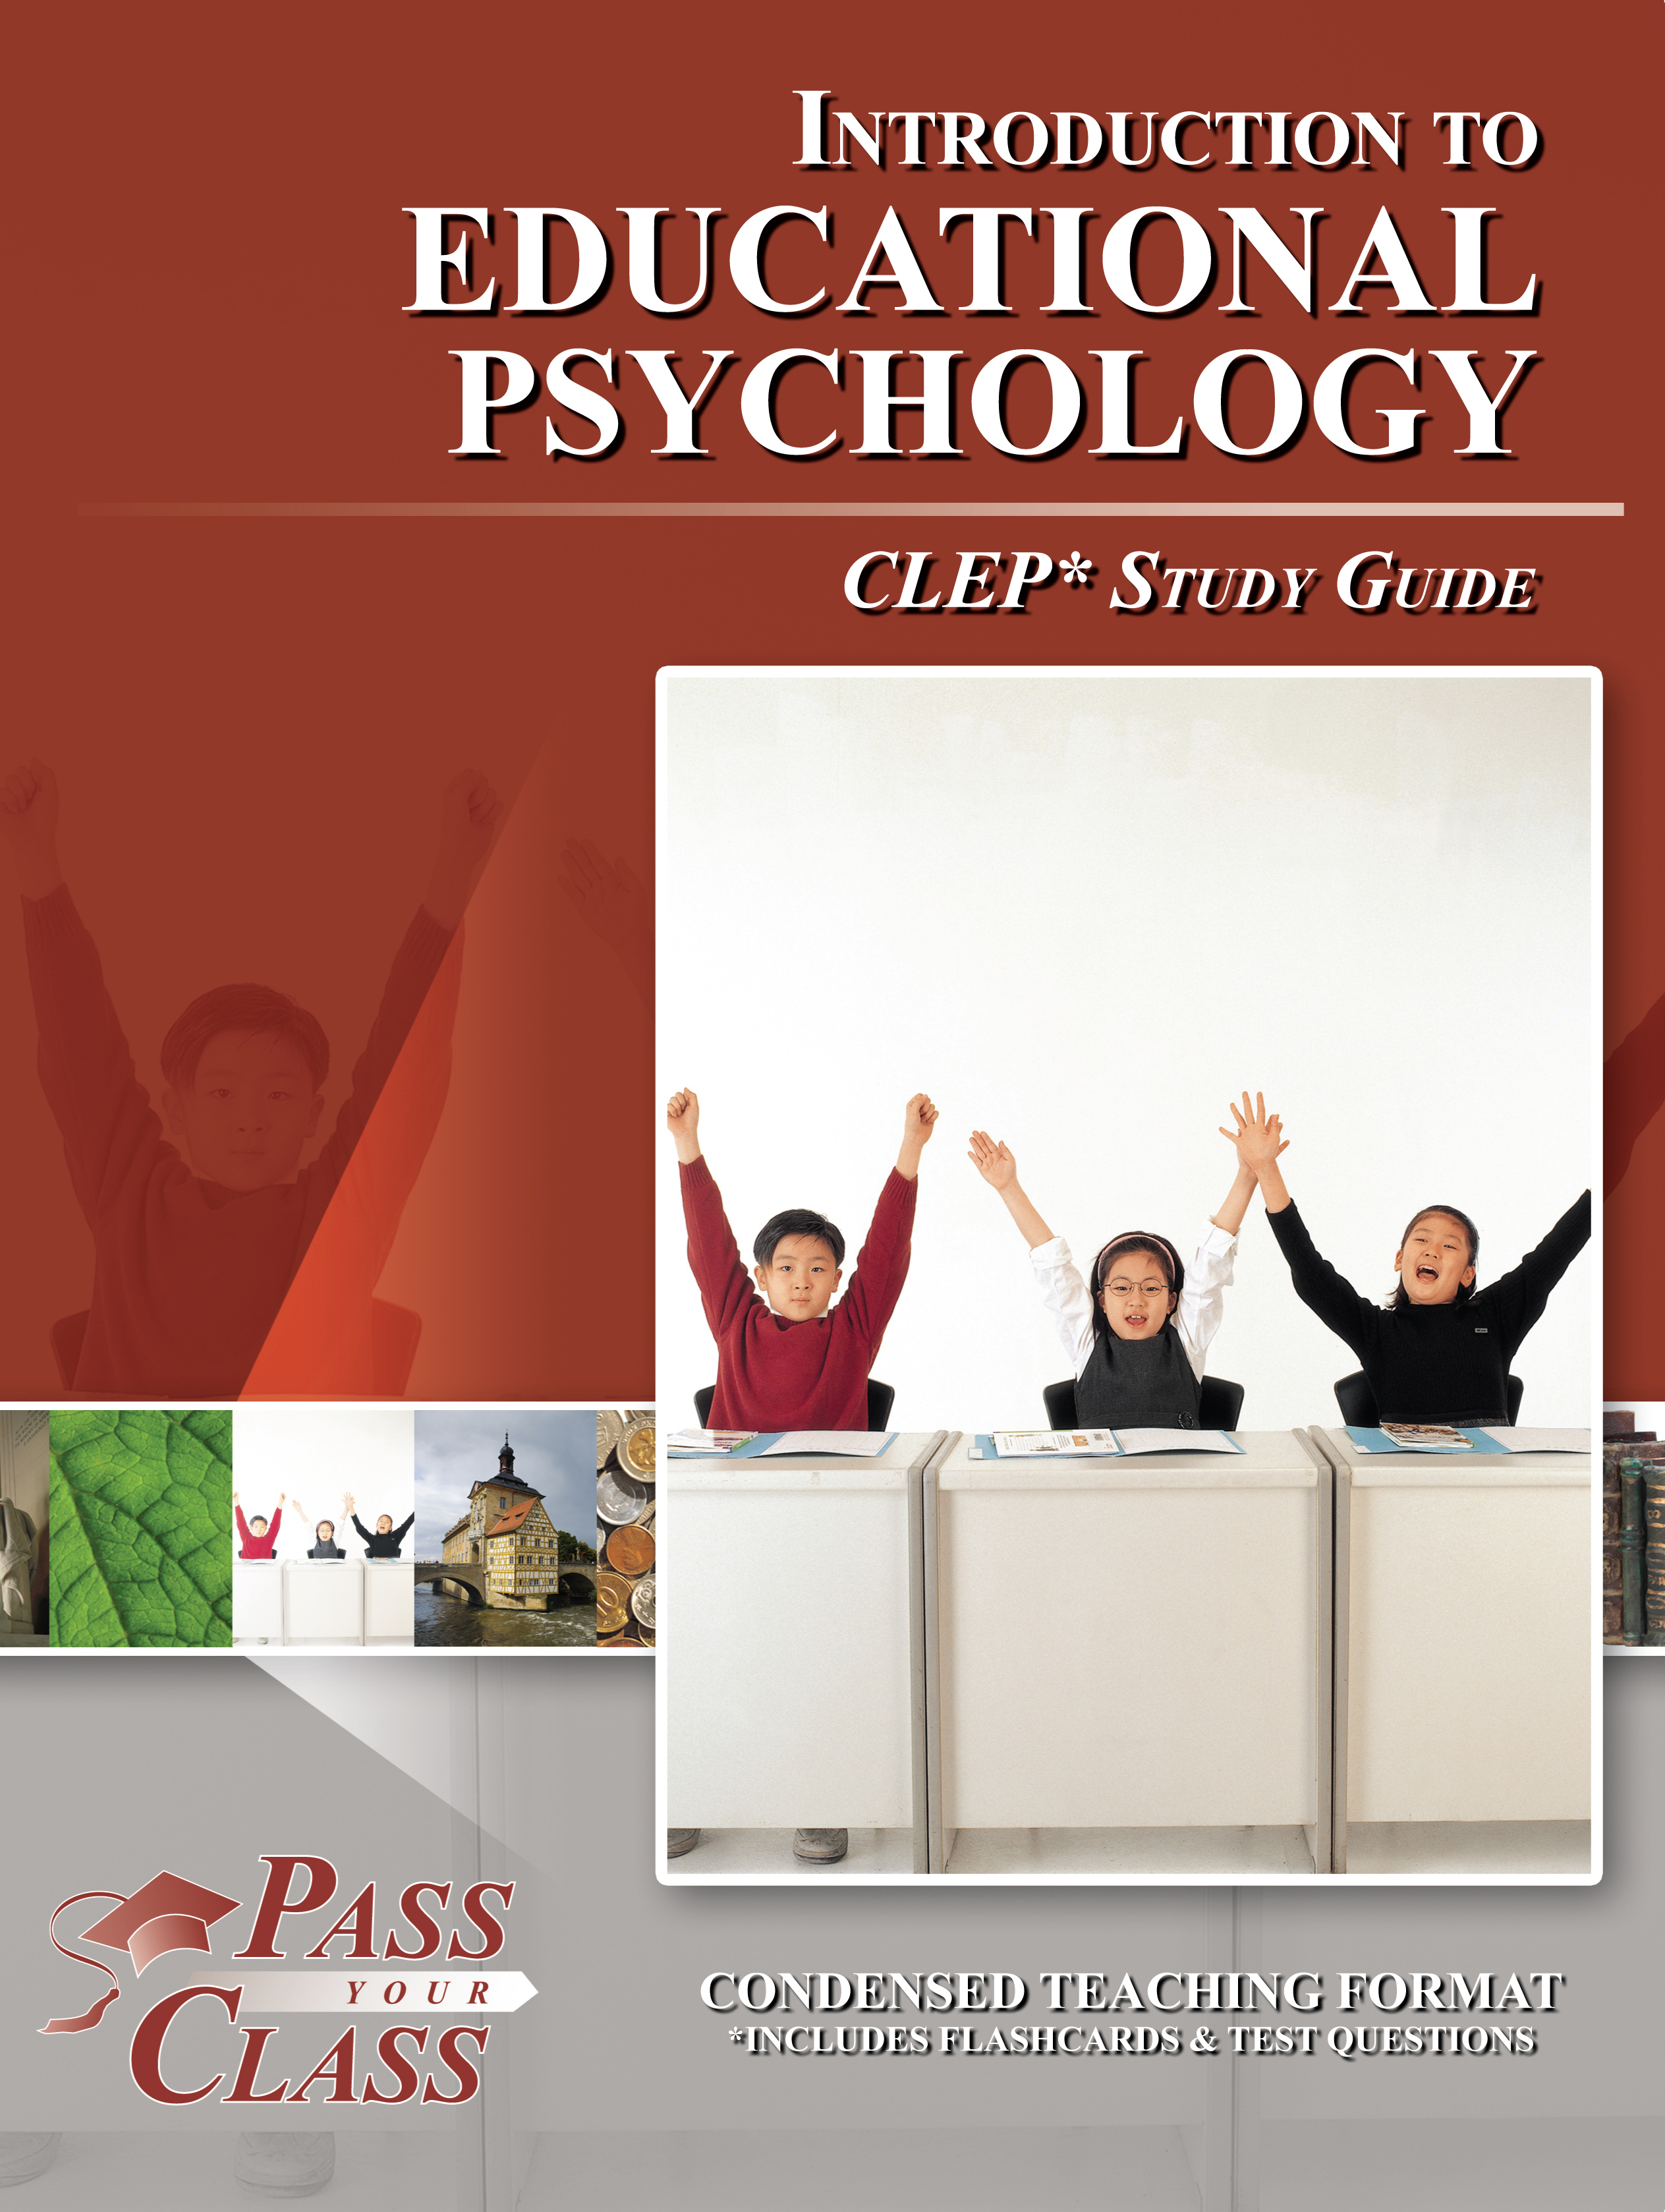 educational psychology final study guide Educational psychology involves the study of how people learn, including topics such as student outcomes, the instructional process, individual differences in learning, gifted learners, and learning disabilities.